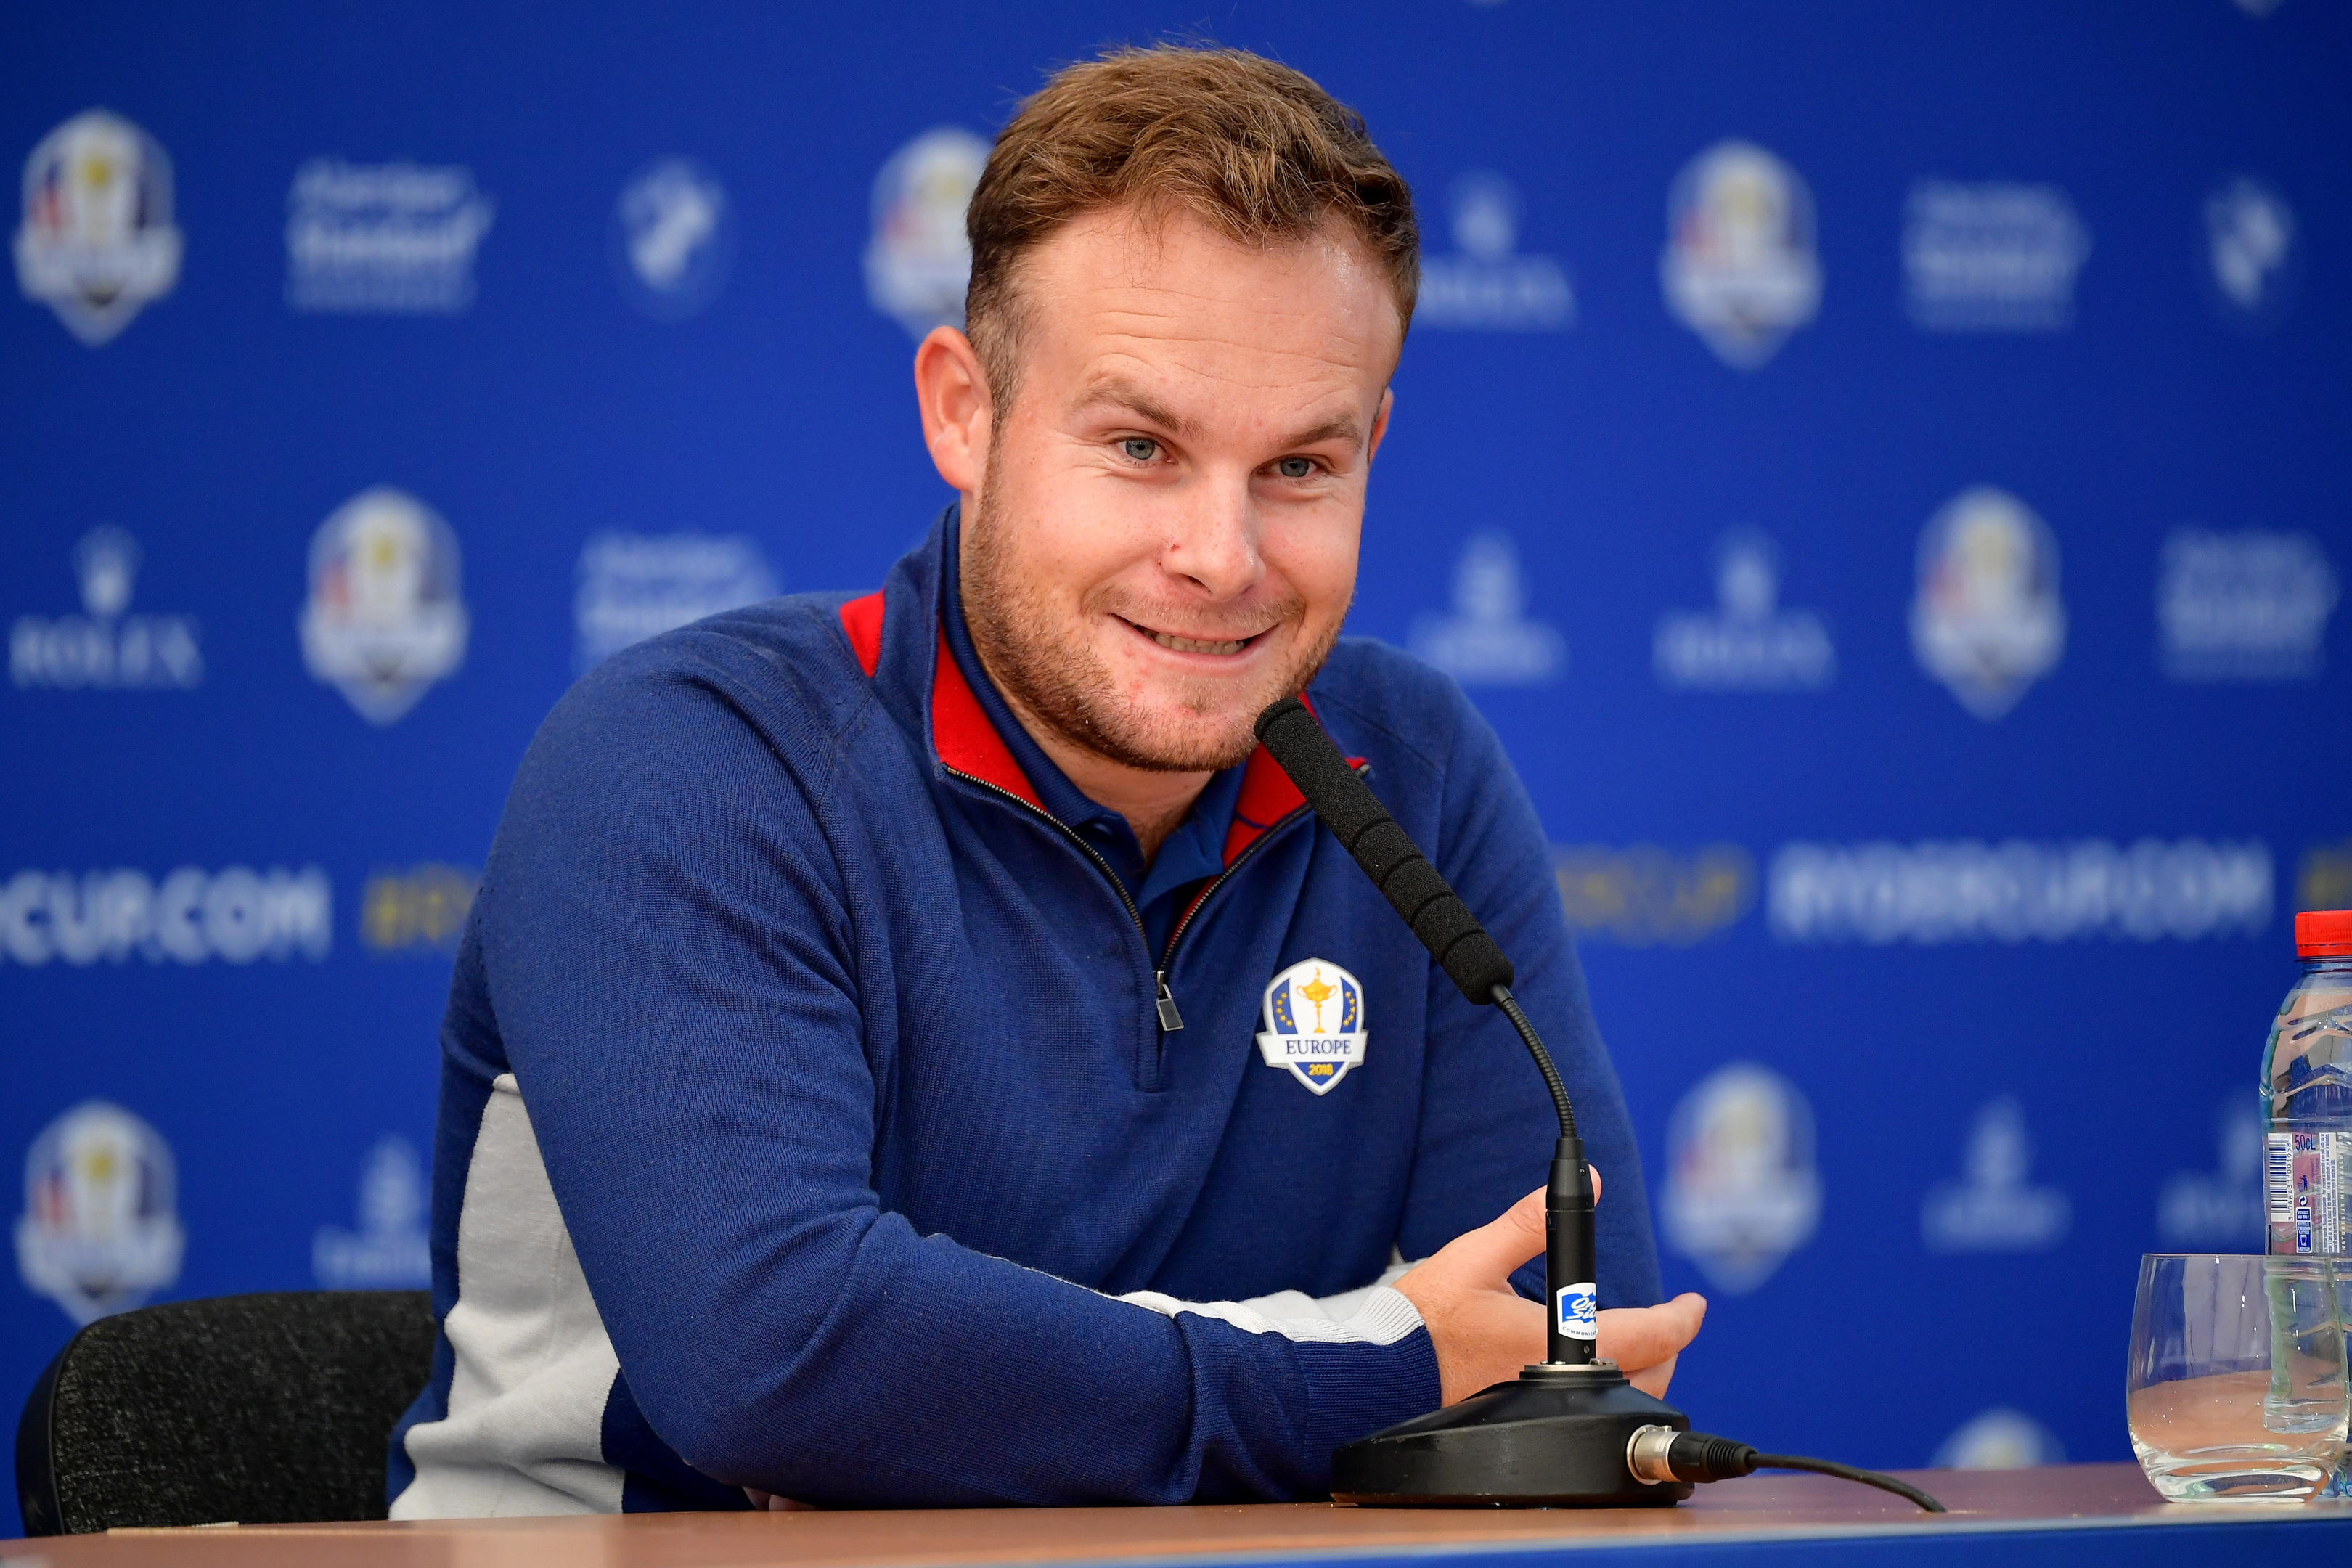 Tyrrell Hatton plans to harness his passion to help Europe regain the Ryder Cup.